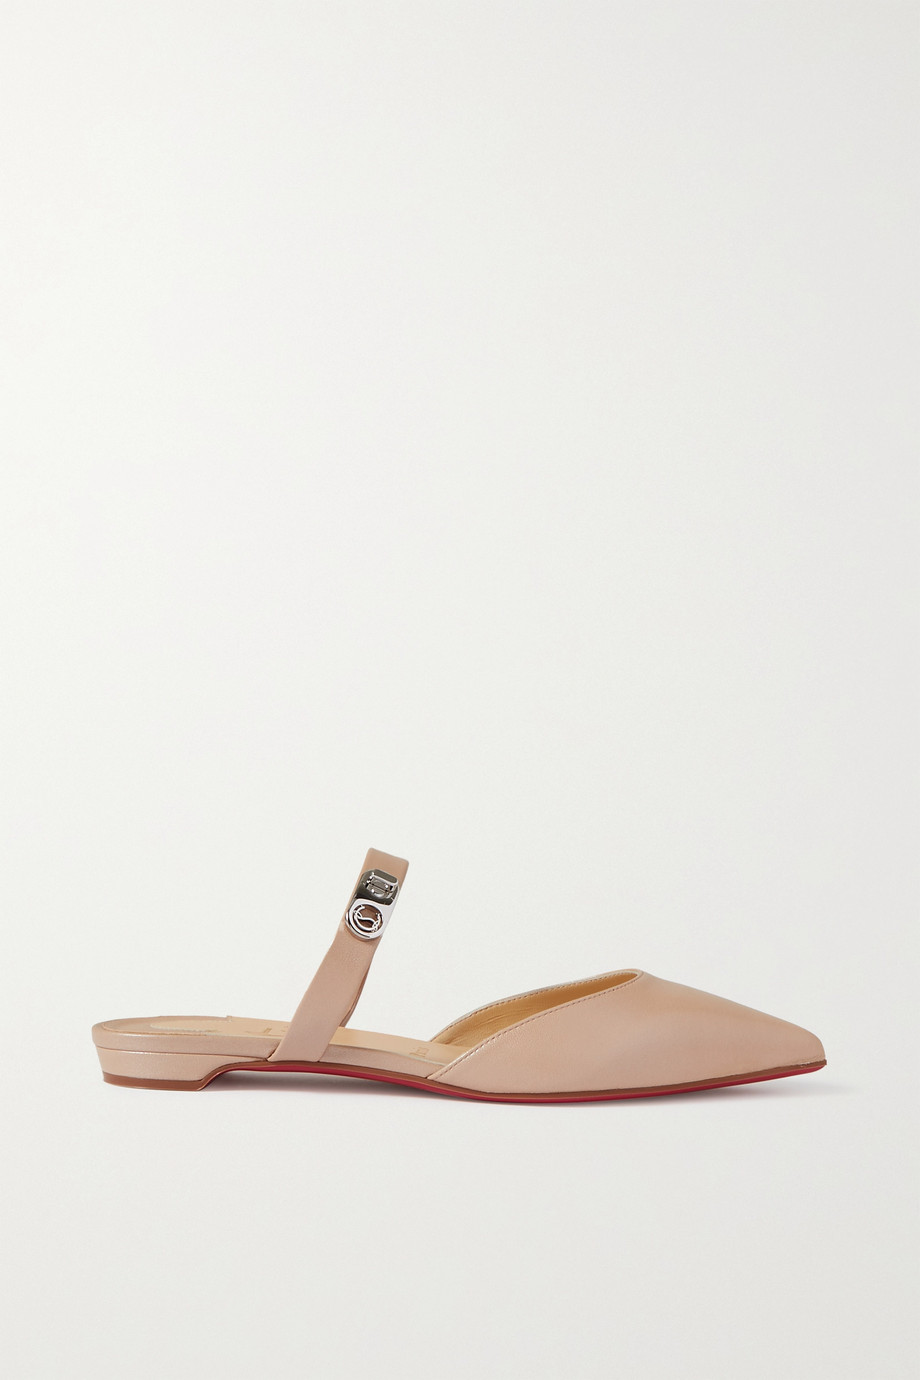 CHRISTIAN LOUBOUTIN Choc Lock leather point-toe flats